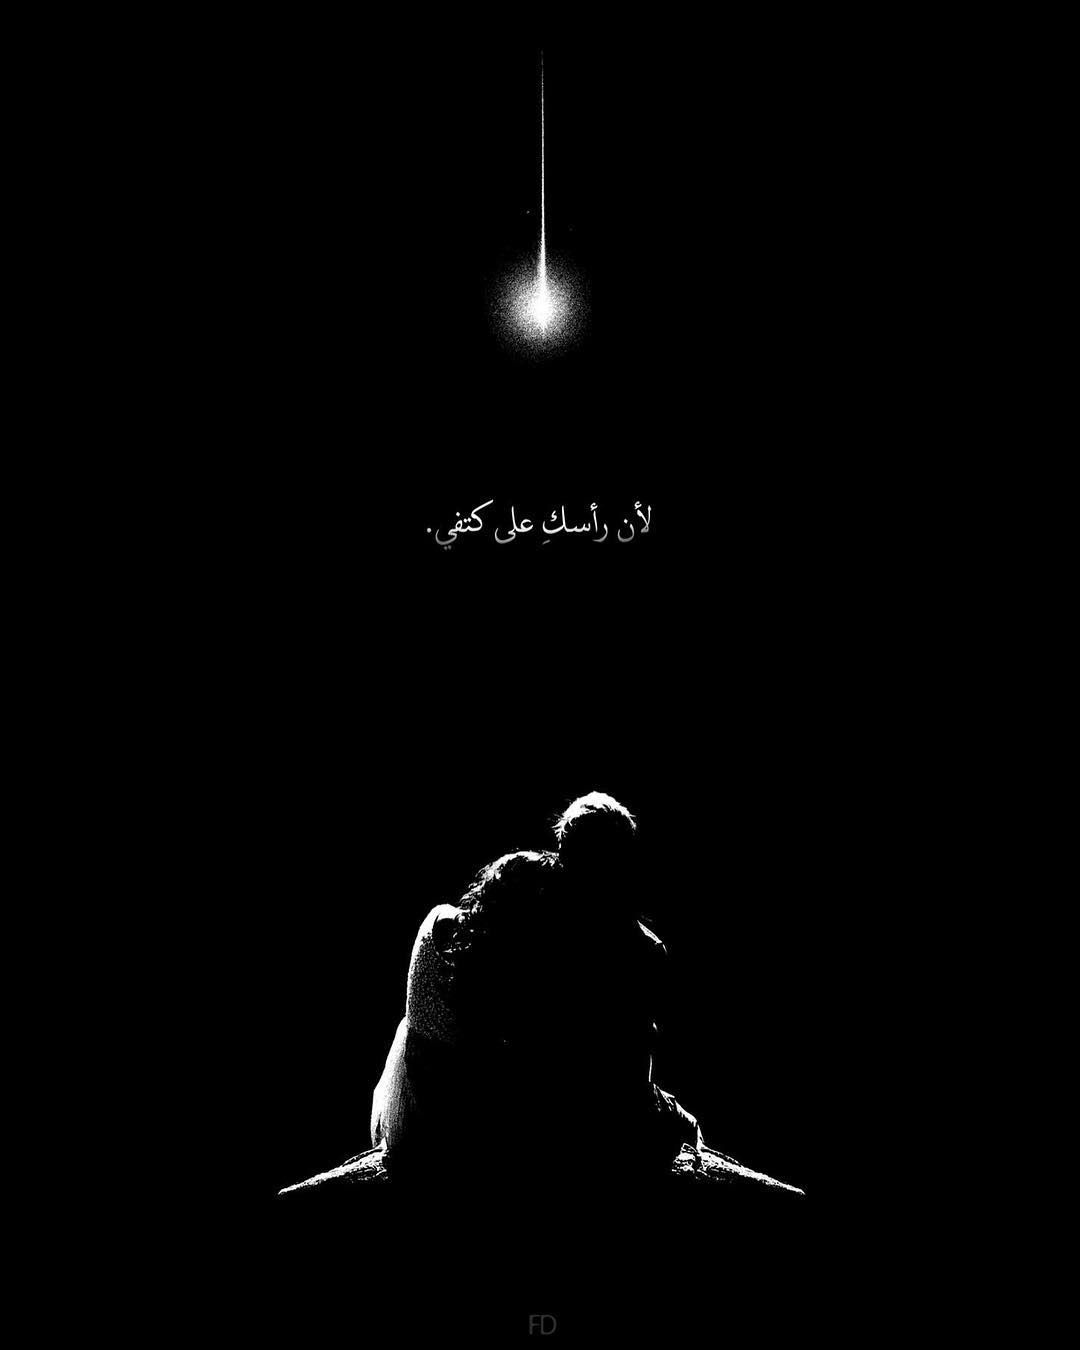 Pin By Amjad Shareef On الفريد ع مارة Arabic Quotes Cover Photo Quotes Photo Quotes